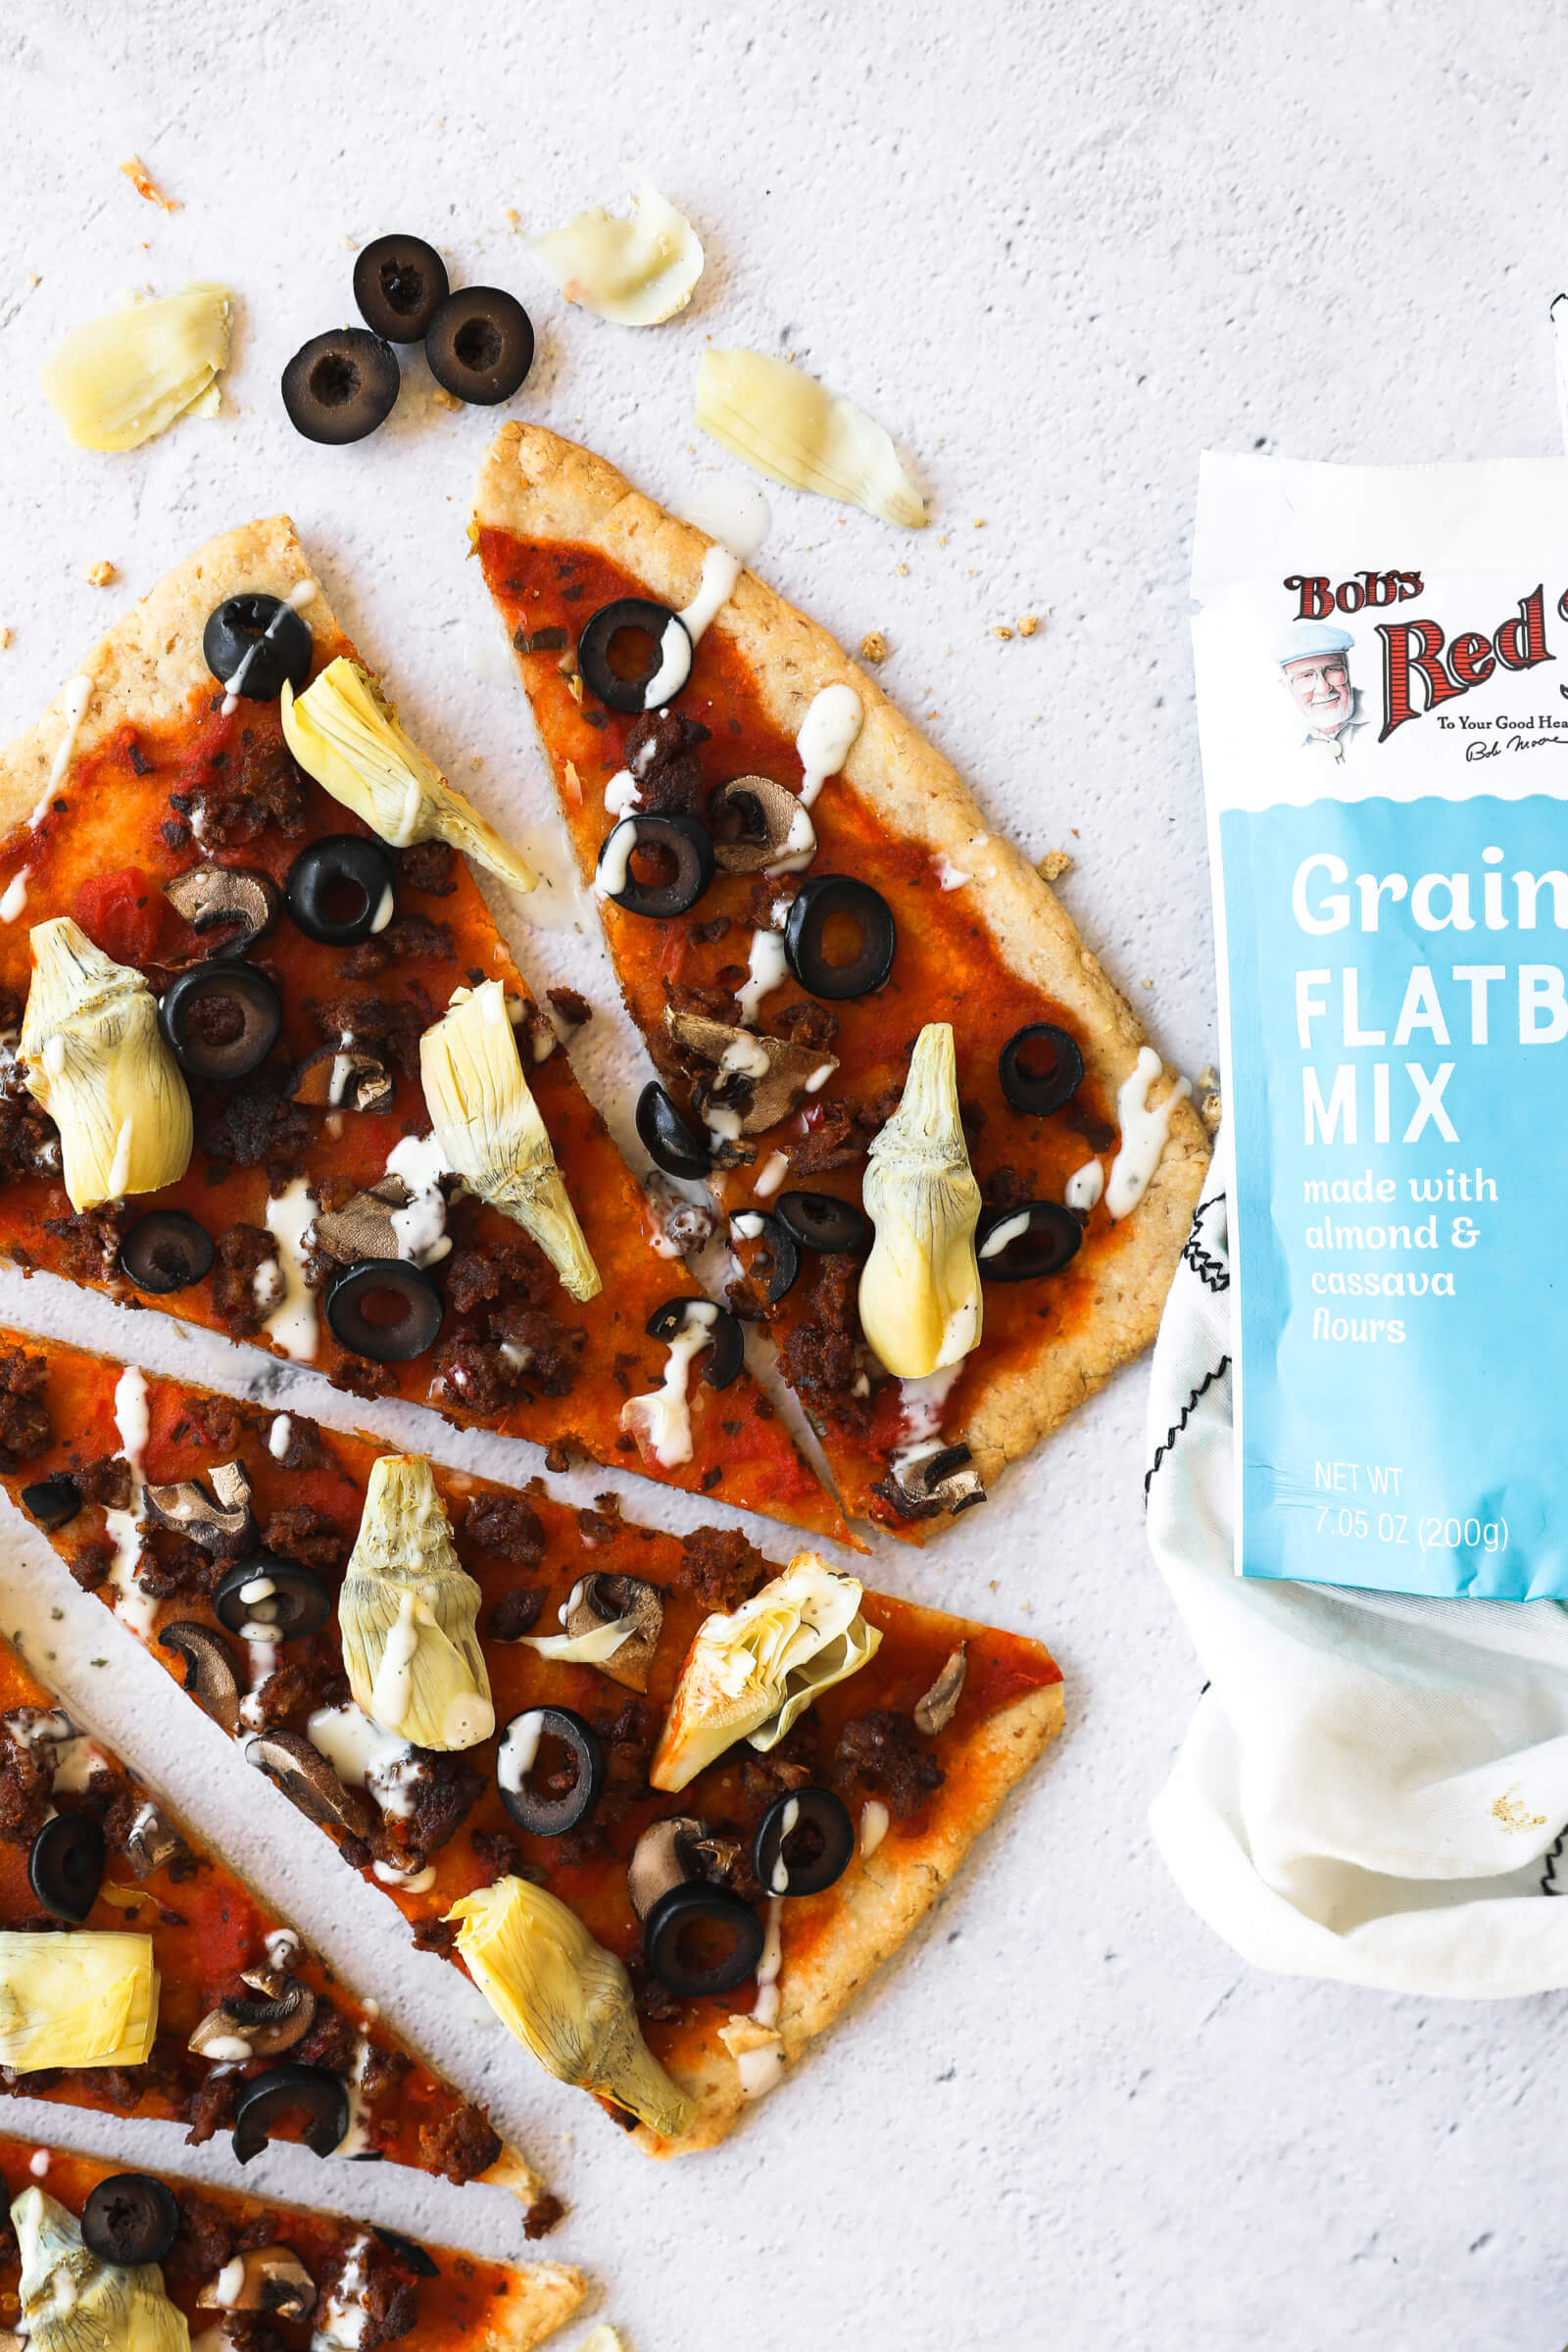 Flatbread pizza slices with a package of Bobs Red Mill Grain Free Flatbread Mix.